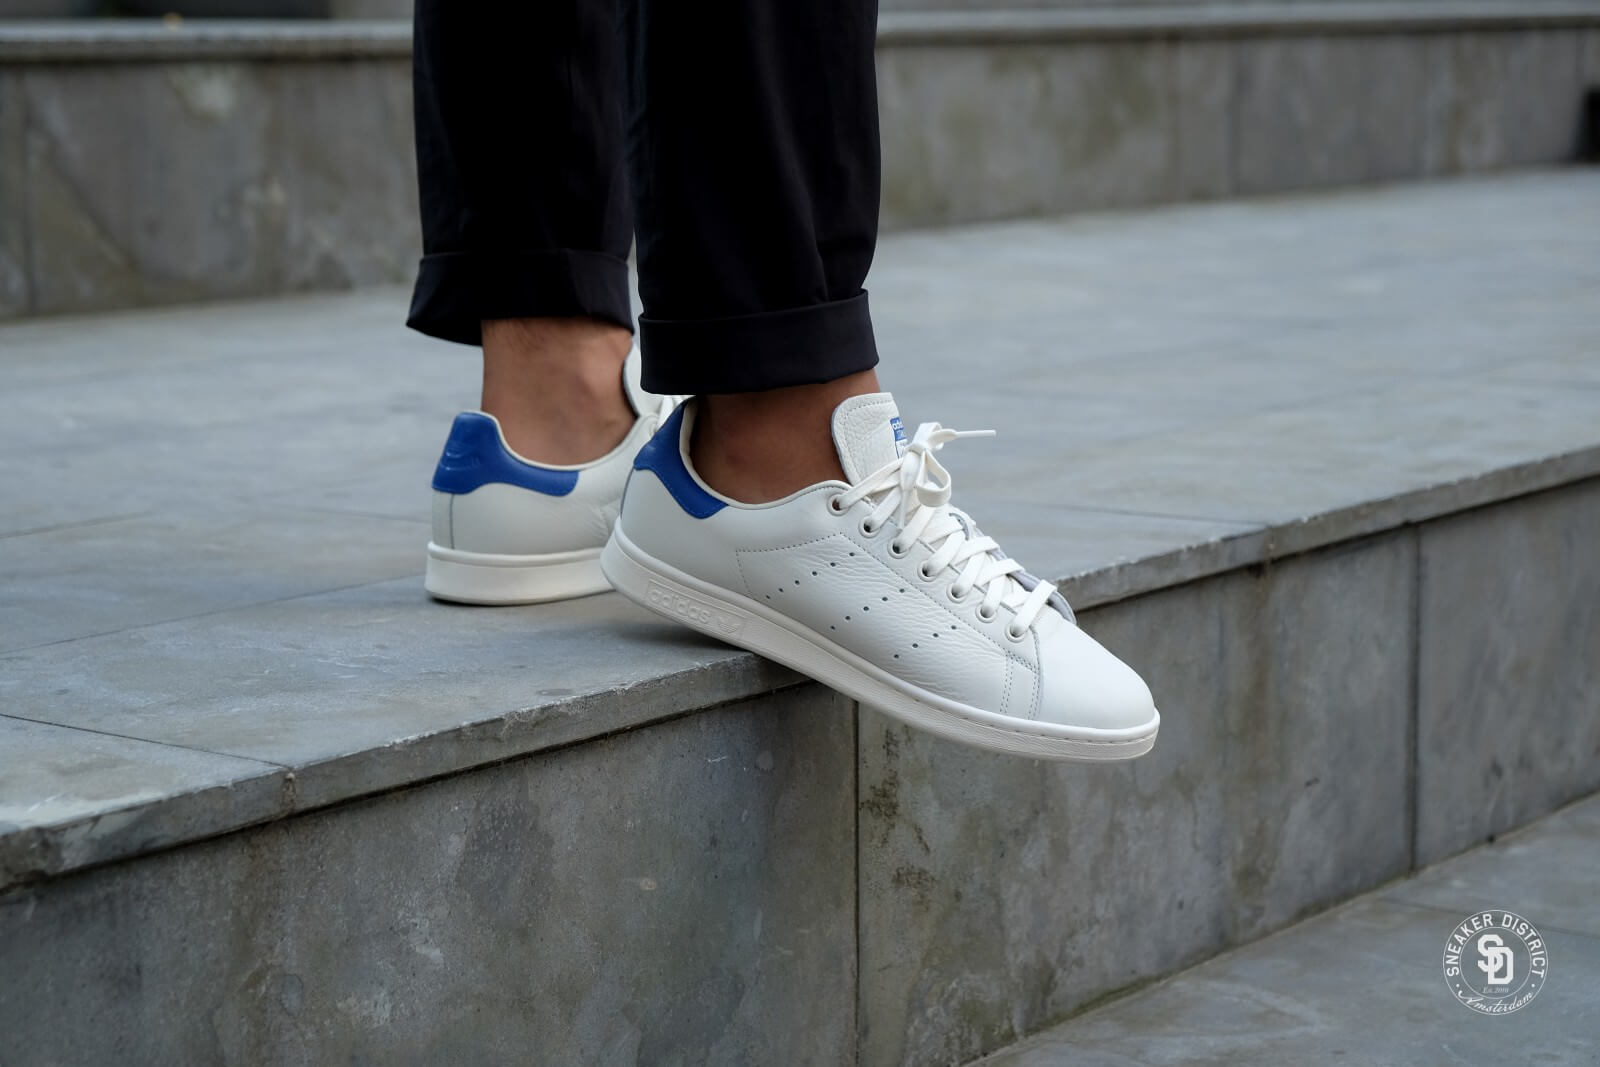 Cuppen Waalre Adidas Stan Smith Chalk White Collegiate Royal B37899